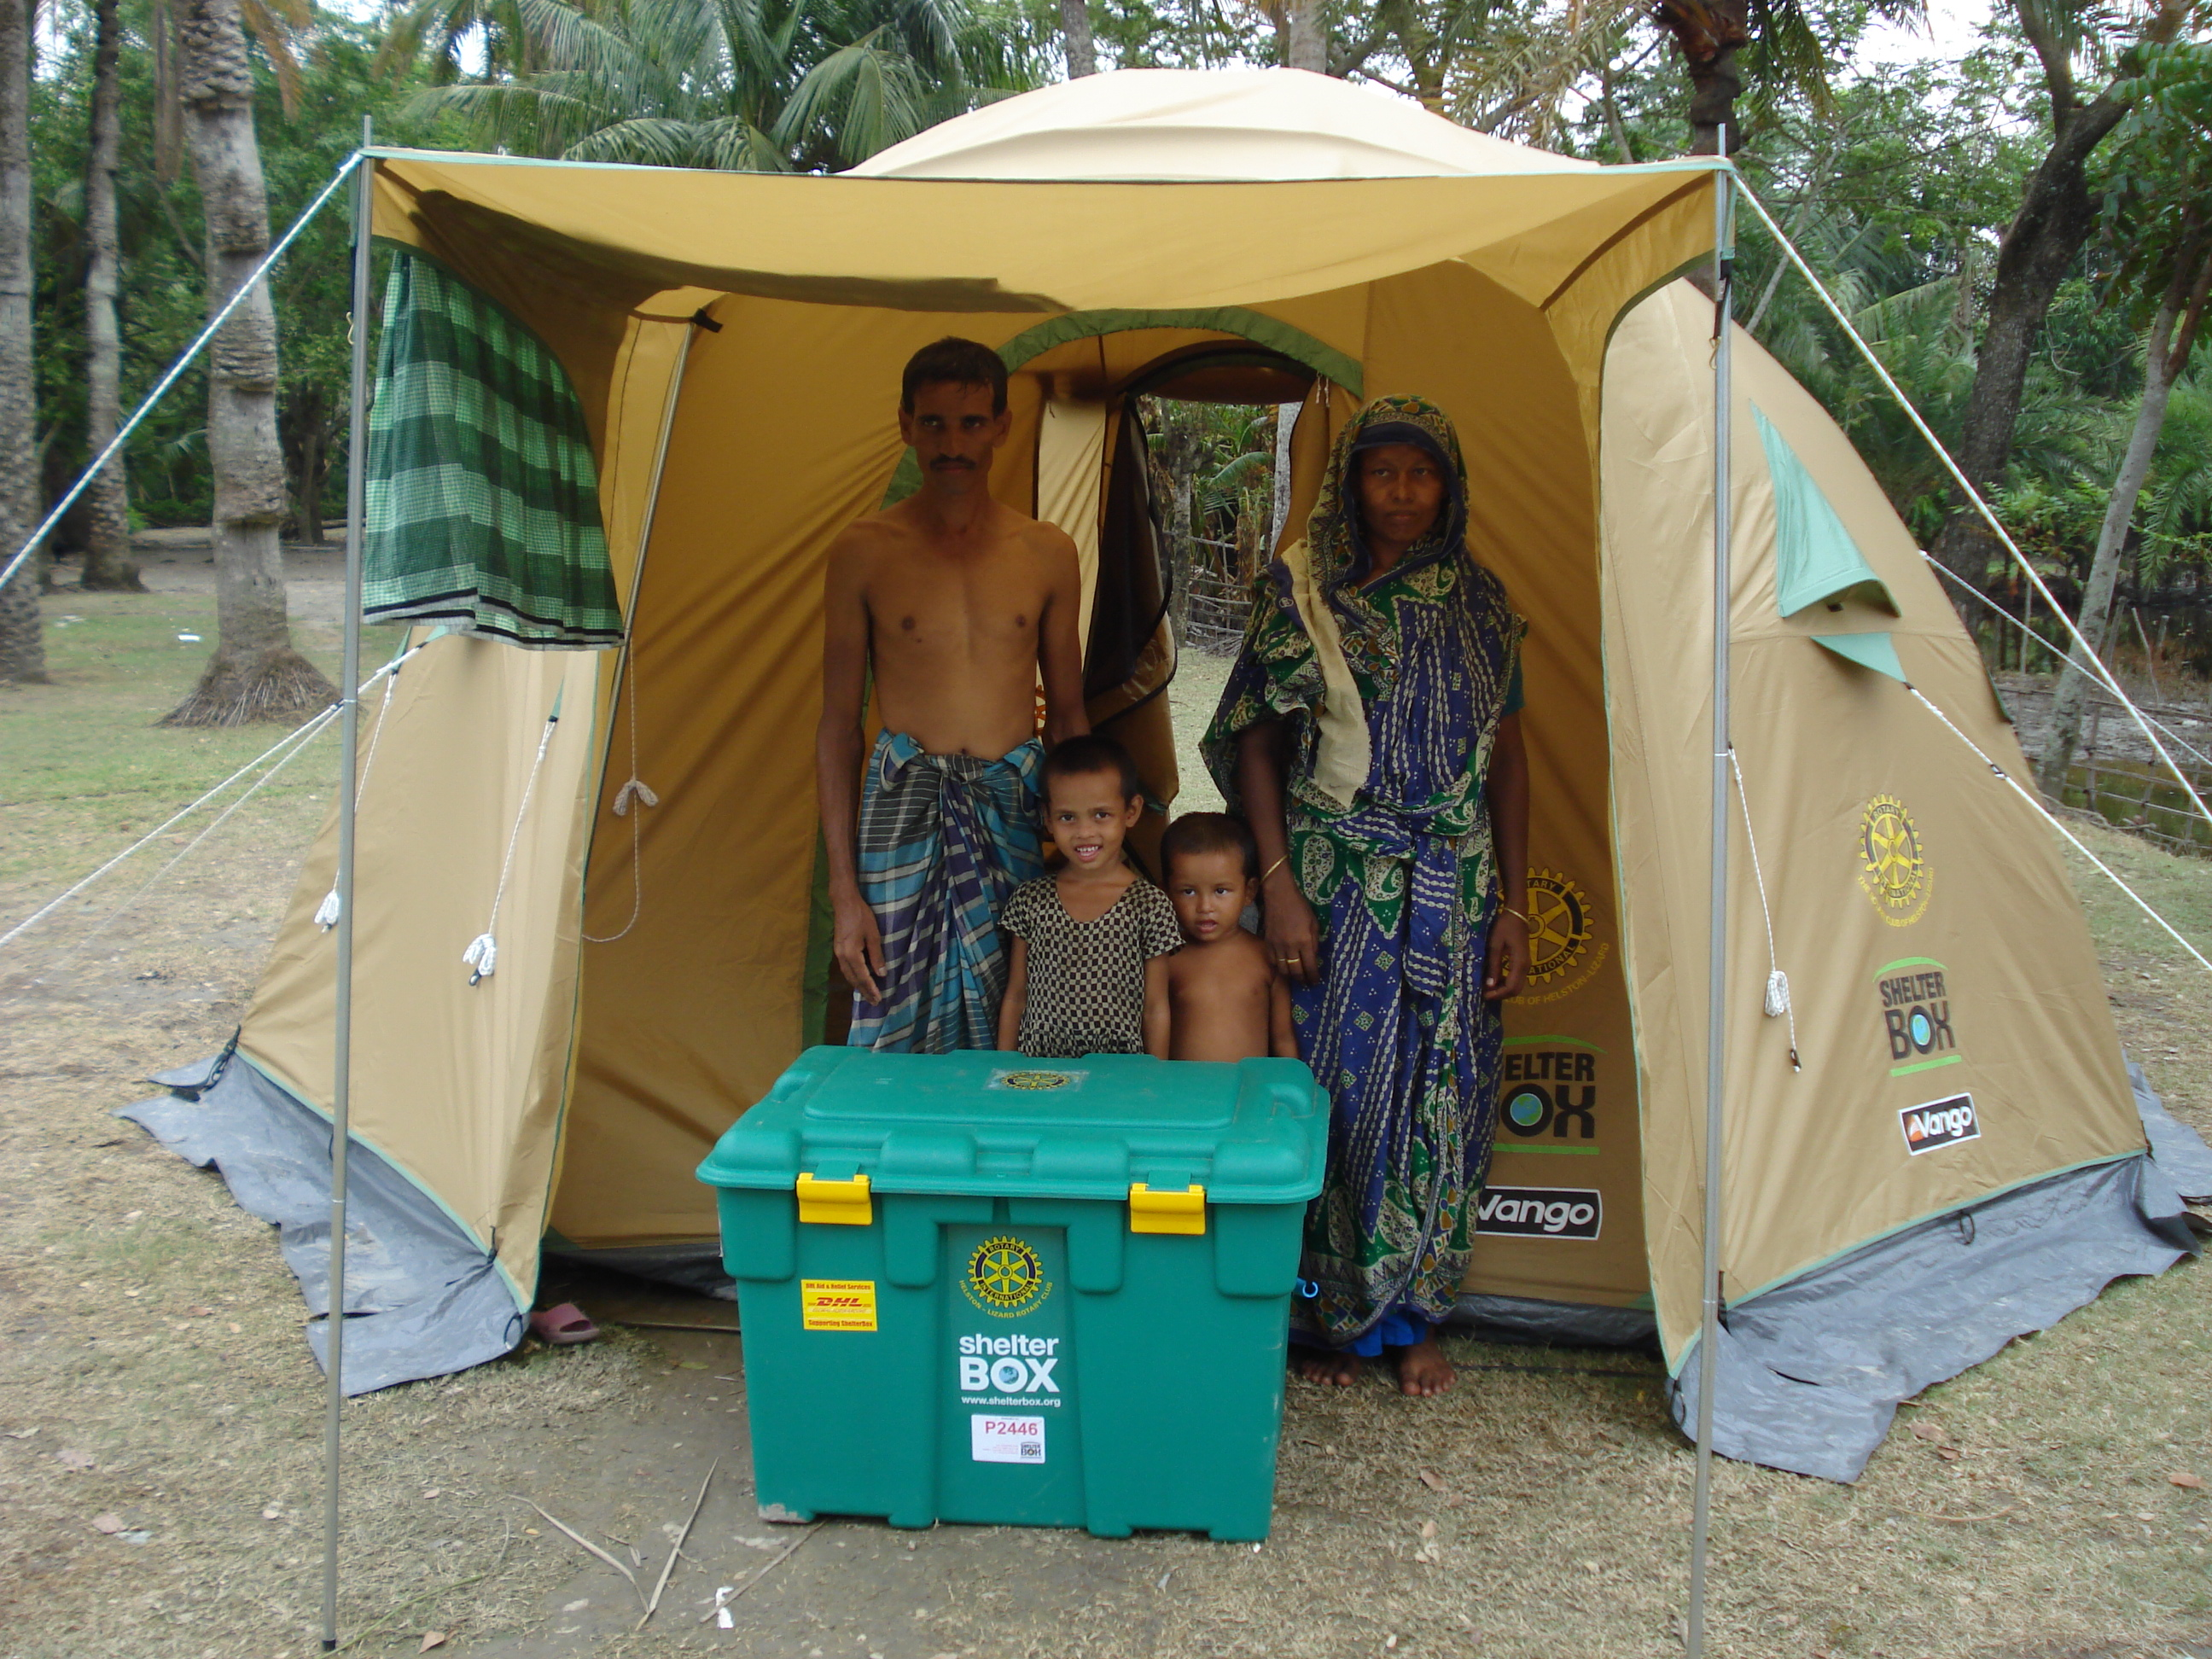 Family in golden ShelterBox tent